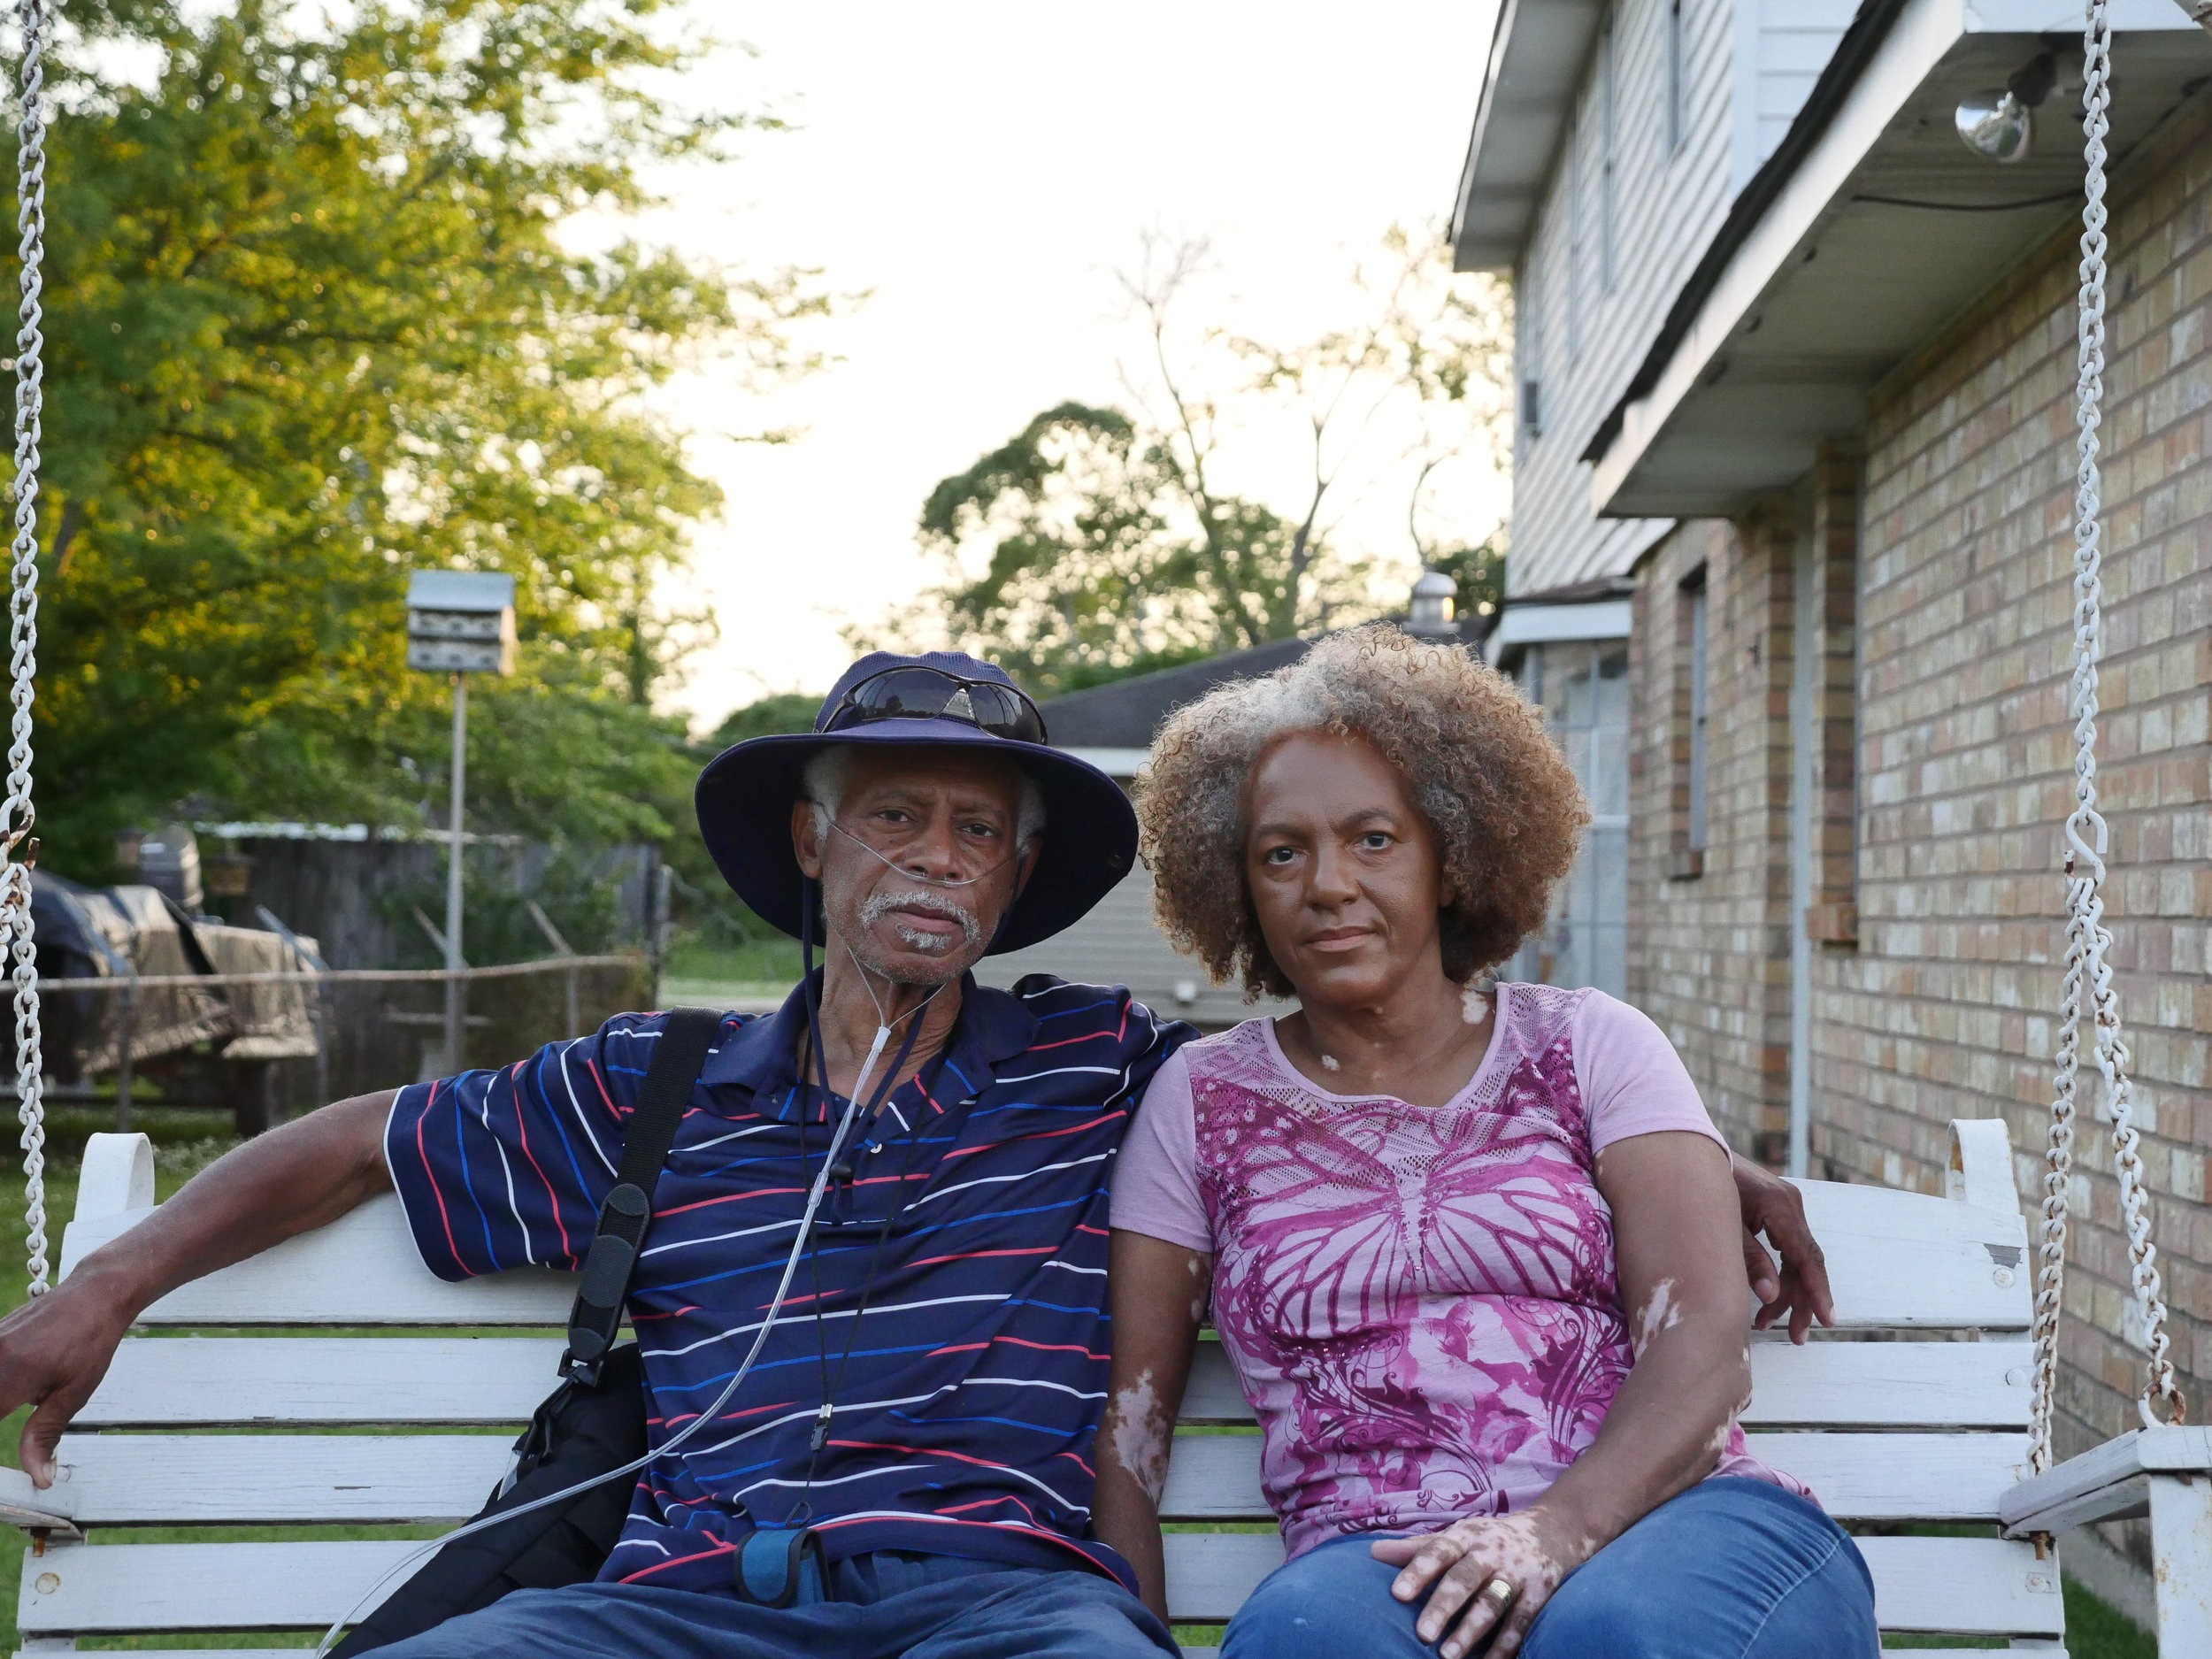 Walter and Lydia Gerard. Walter died of kidney cancer in June 2018. Evidence suggests an association between kidney cancer and chloroprene exposure.